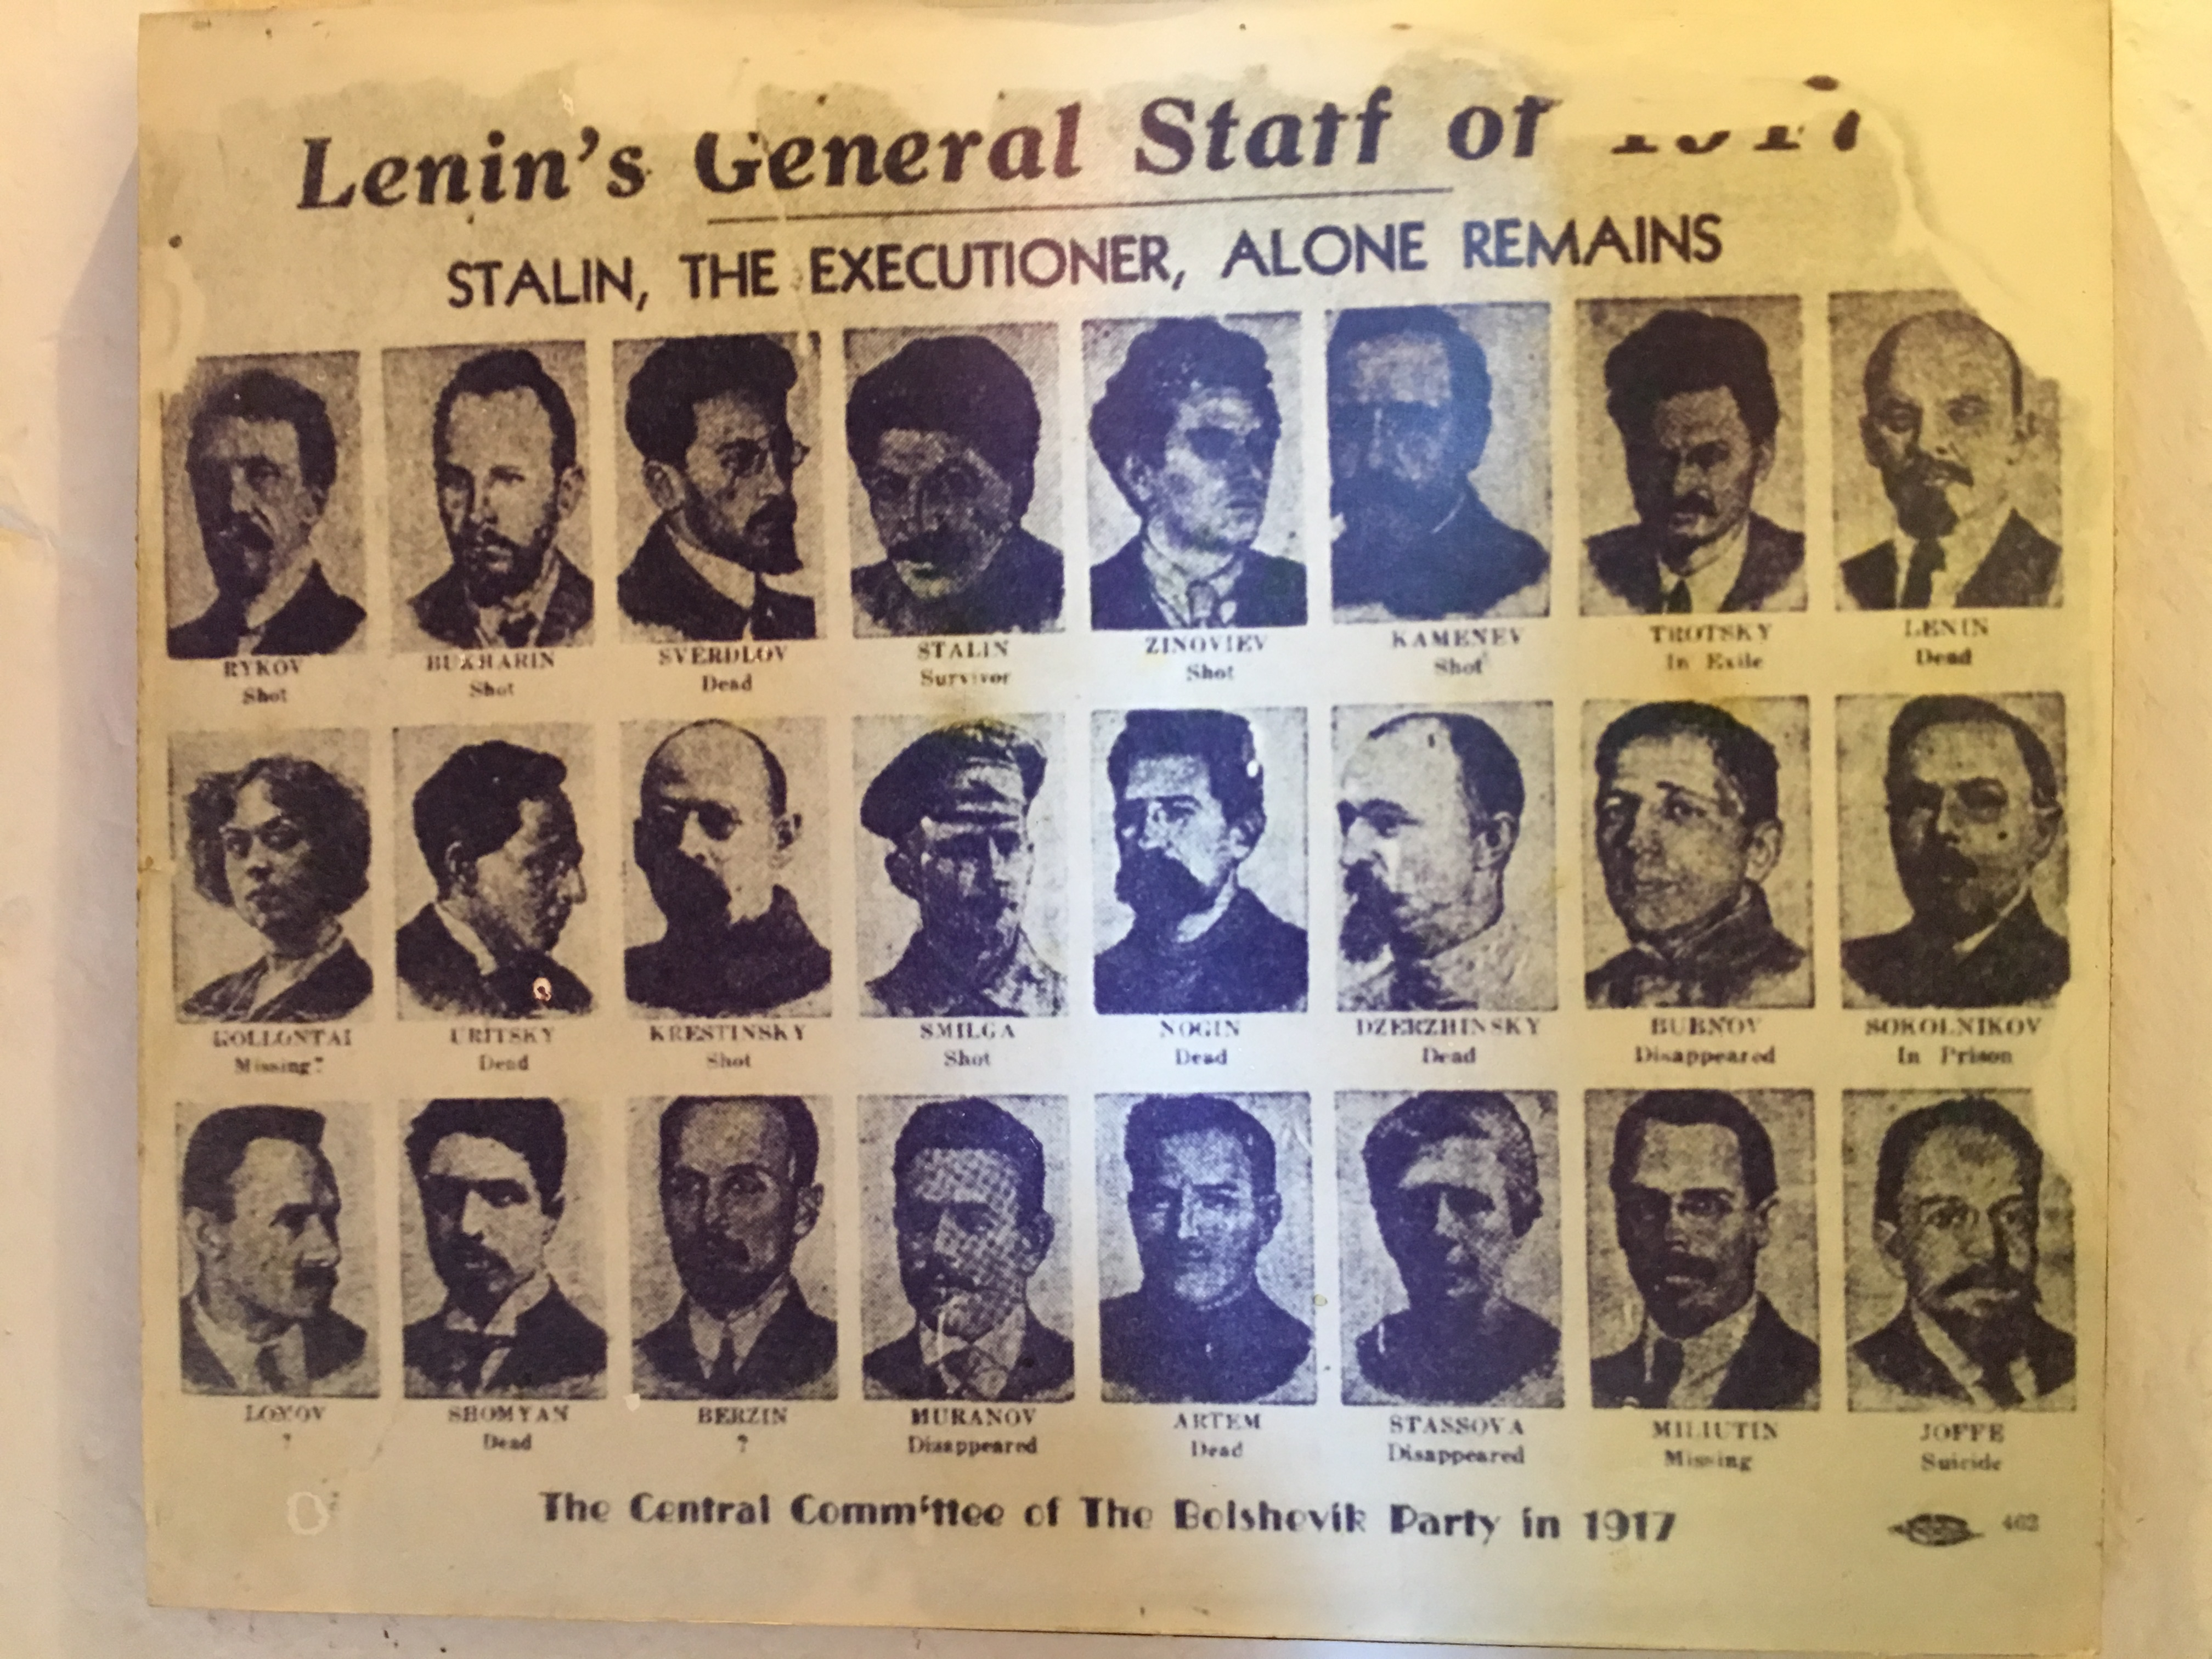 Photos of Stalin's enemies.